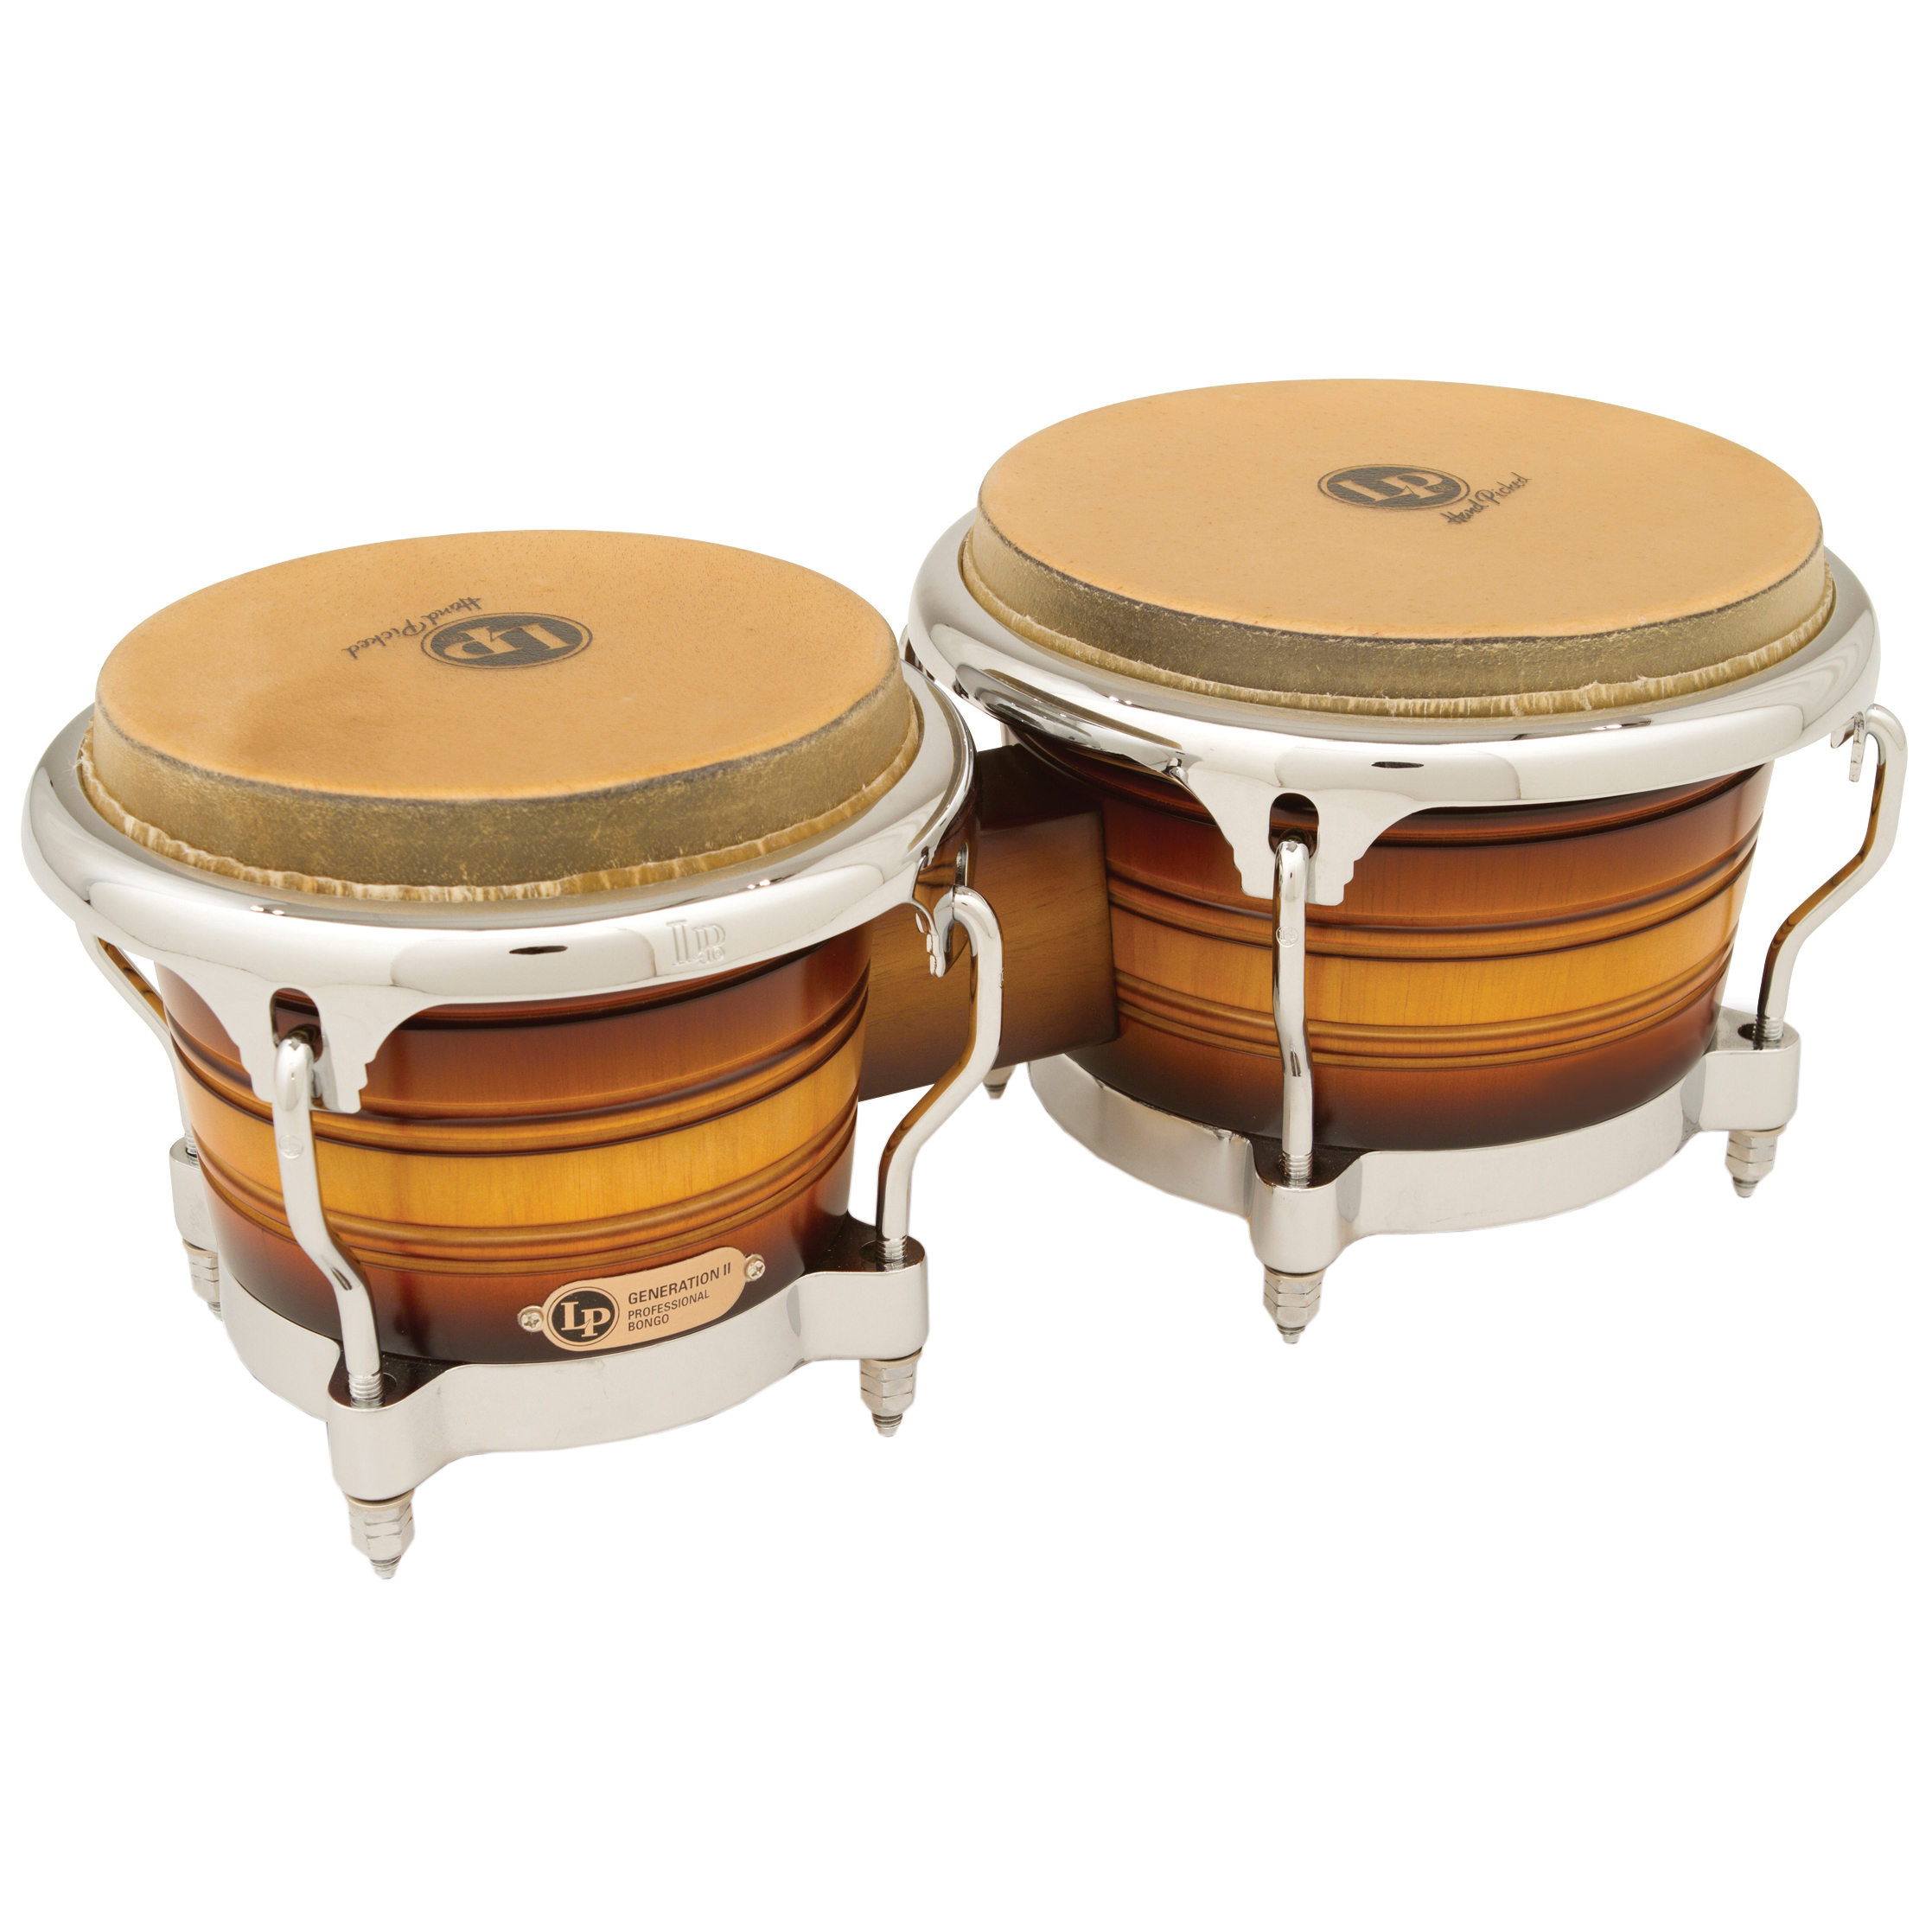 LP Generation II Bongos with Comfort Curve Rims